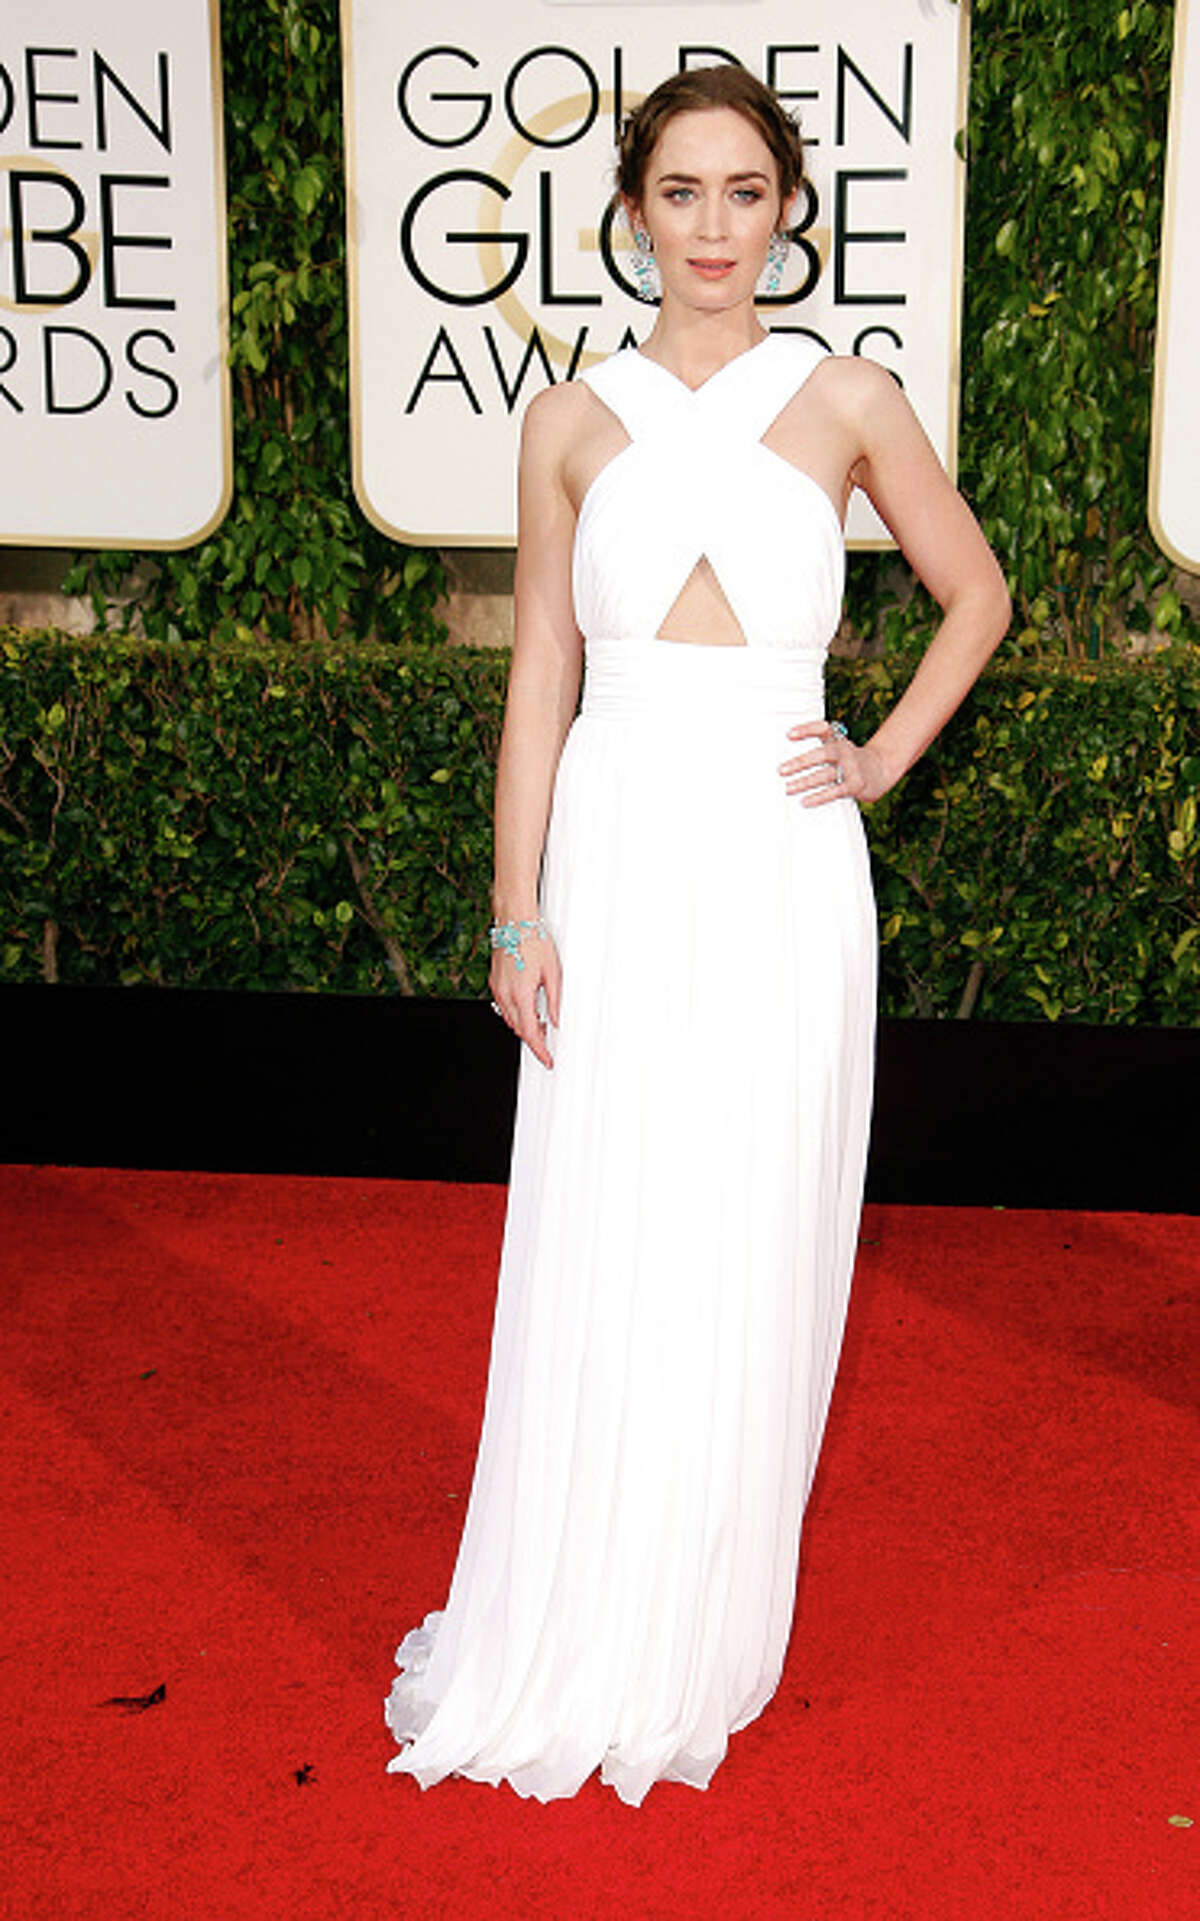 9. Emily Pictured: Emily Blunt in Michael Kors shows, again, how to master the classic white cutaway, this time with a slightly Grecian-inspired accent.